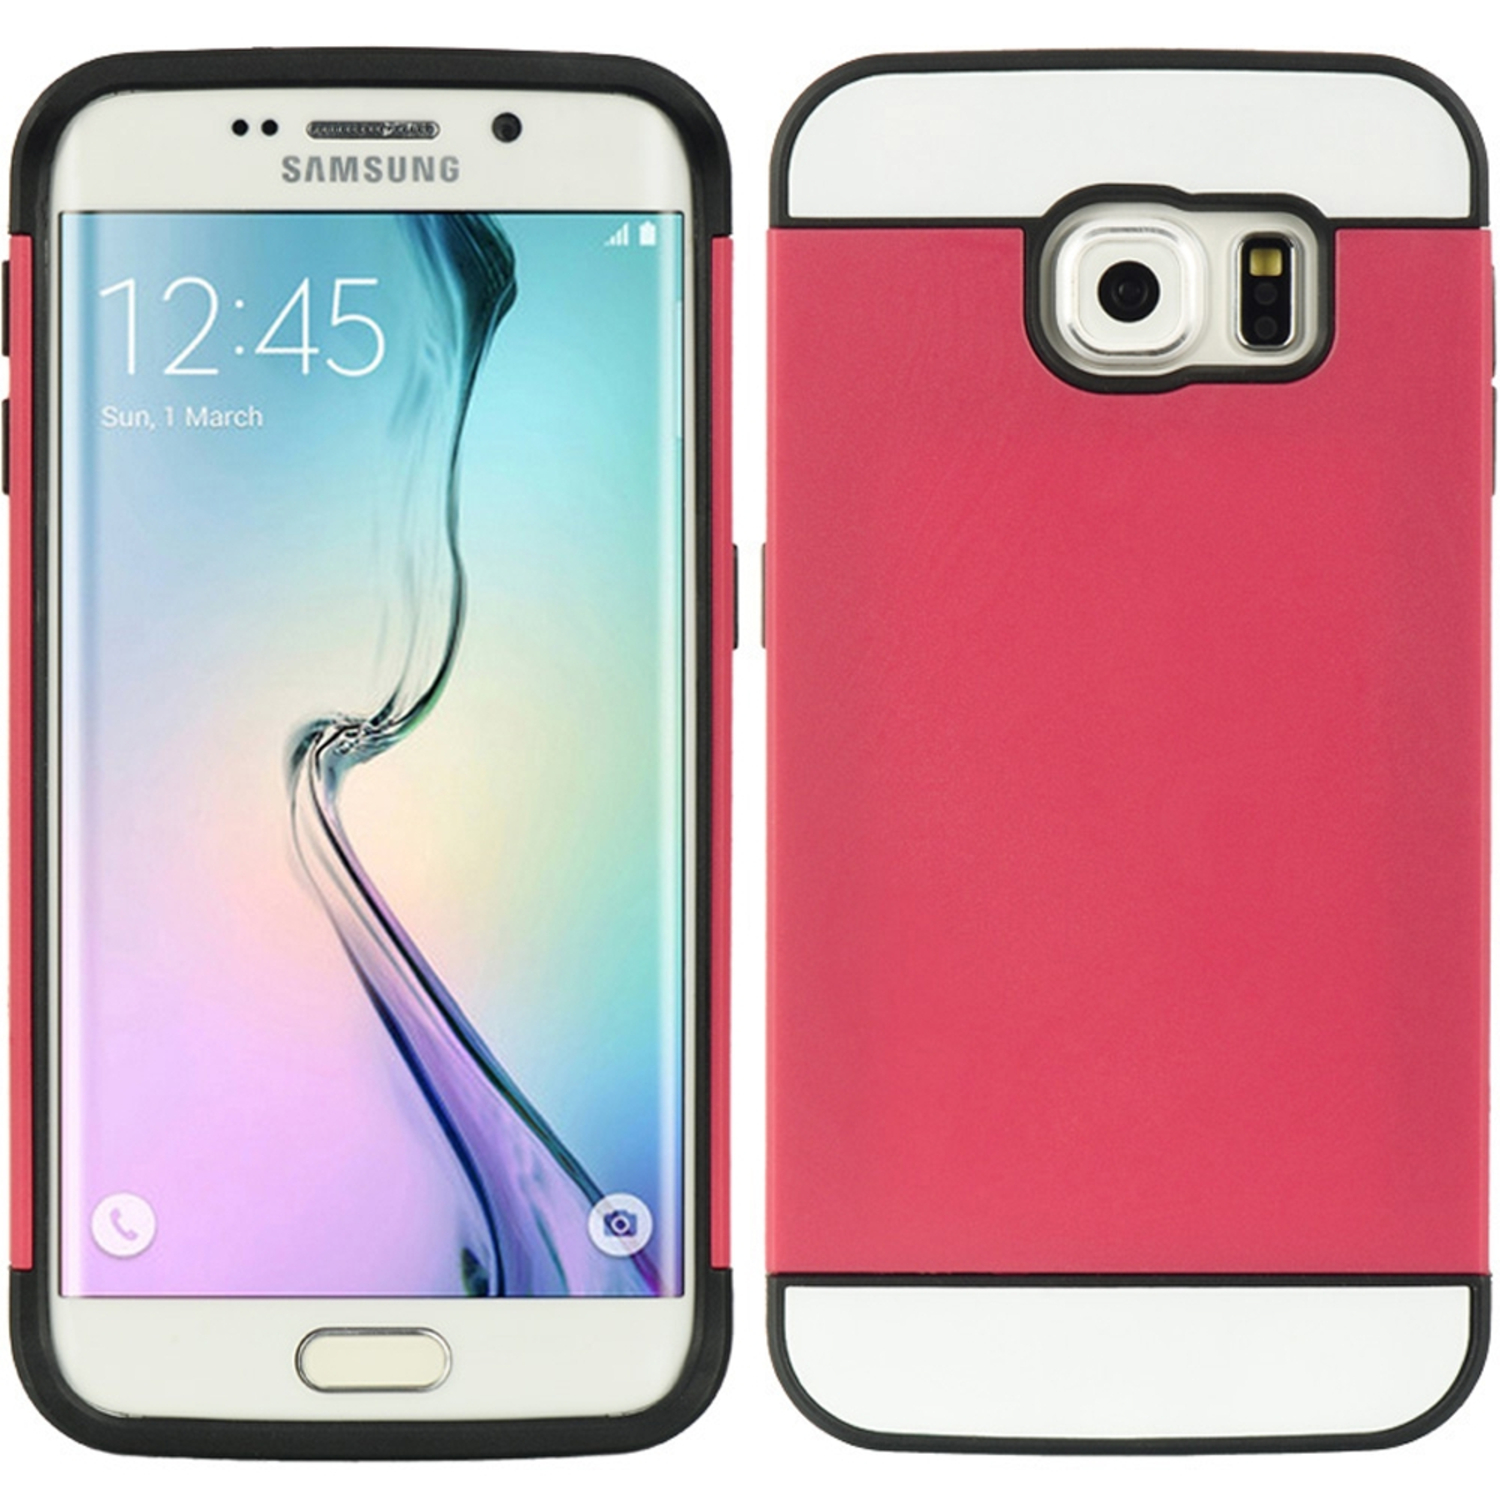 Samsung Galaxy S6 Edge Case, by Insten Hard Plastic/Soft TPU Rubber with Card Holder Slot Case Cover For Samsung Galaxy S6 Edge